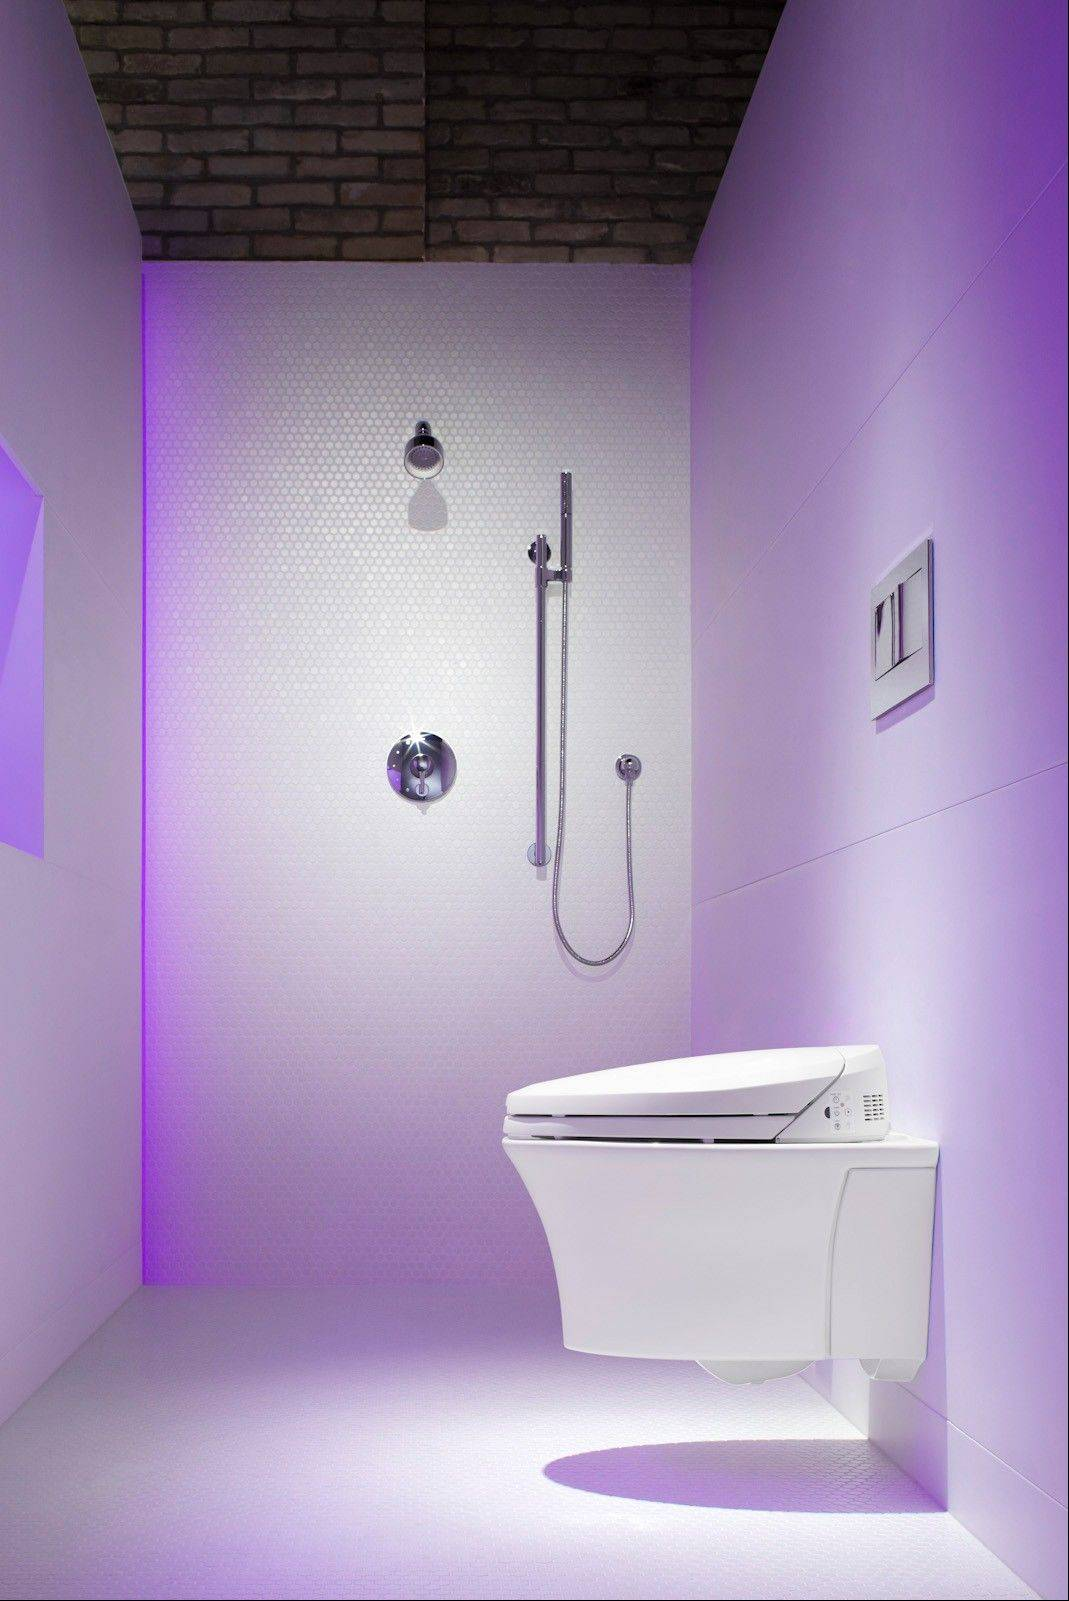 A wall-hung residential toilet with a recessed water tank will save space in a small bathroom.